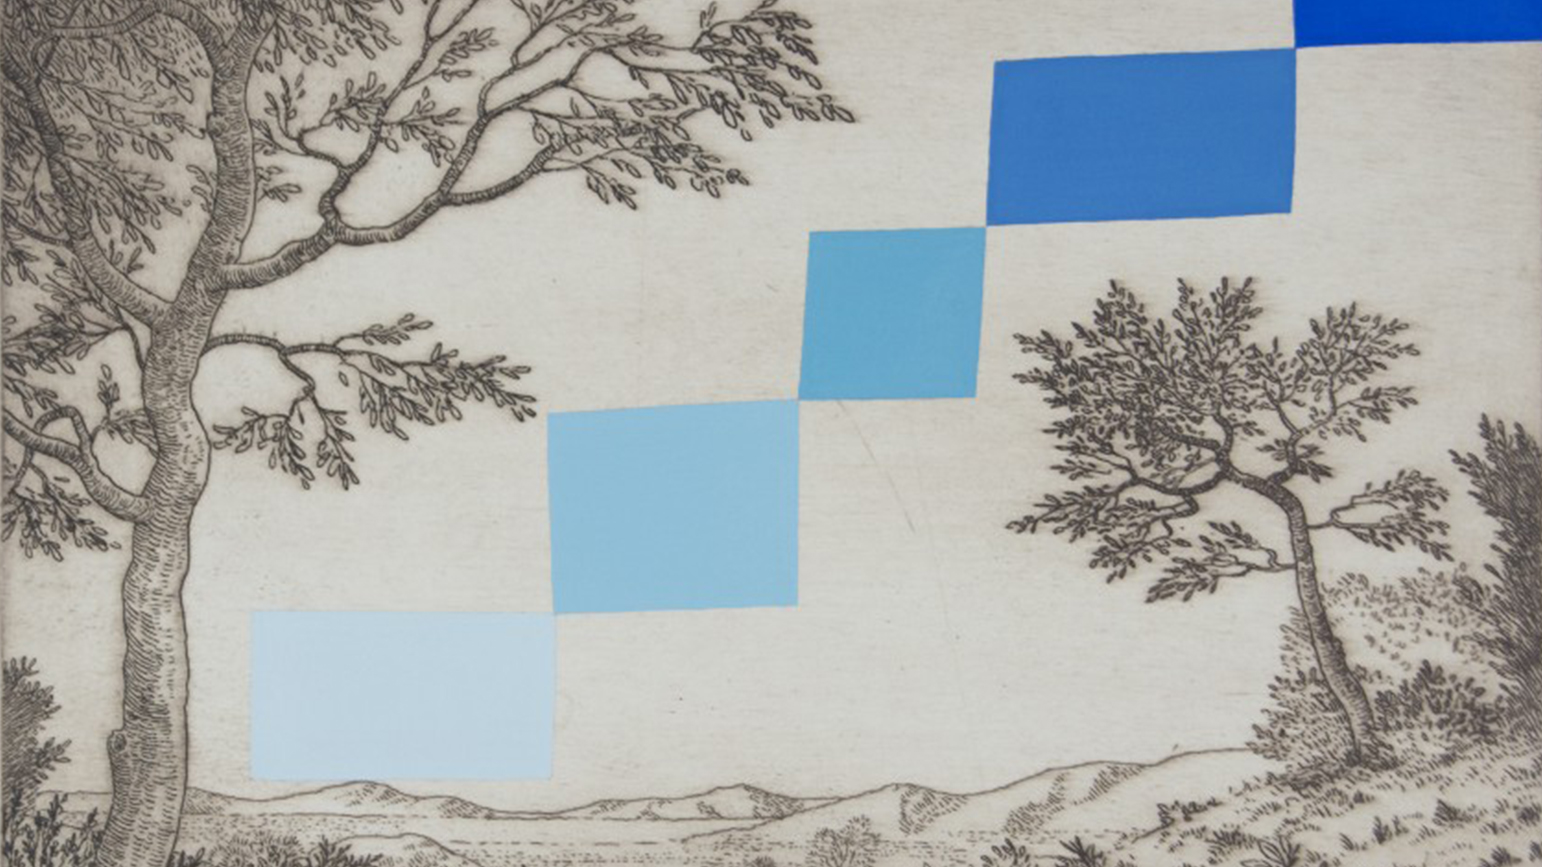 Black-and-white print of a classical landscape with rectangles of varying shades of blue painted over the image in steps